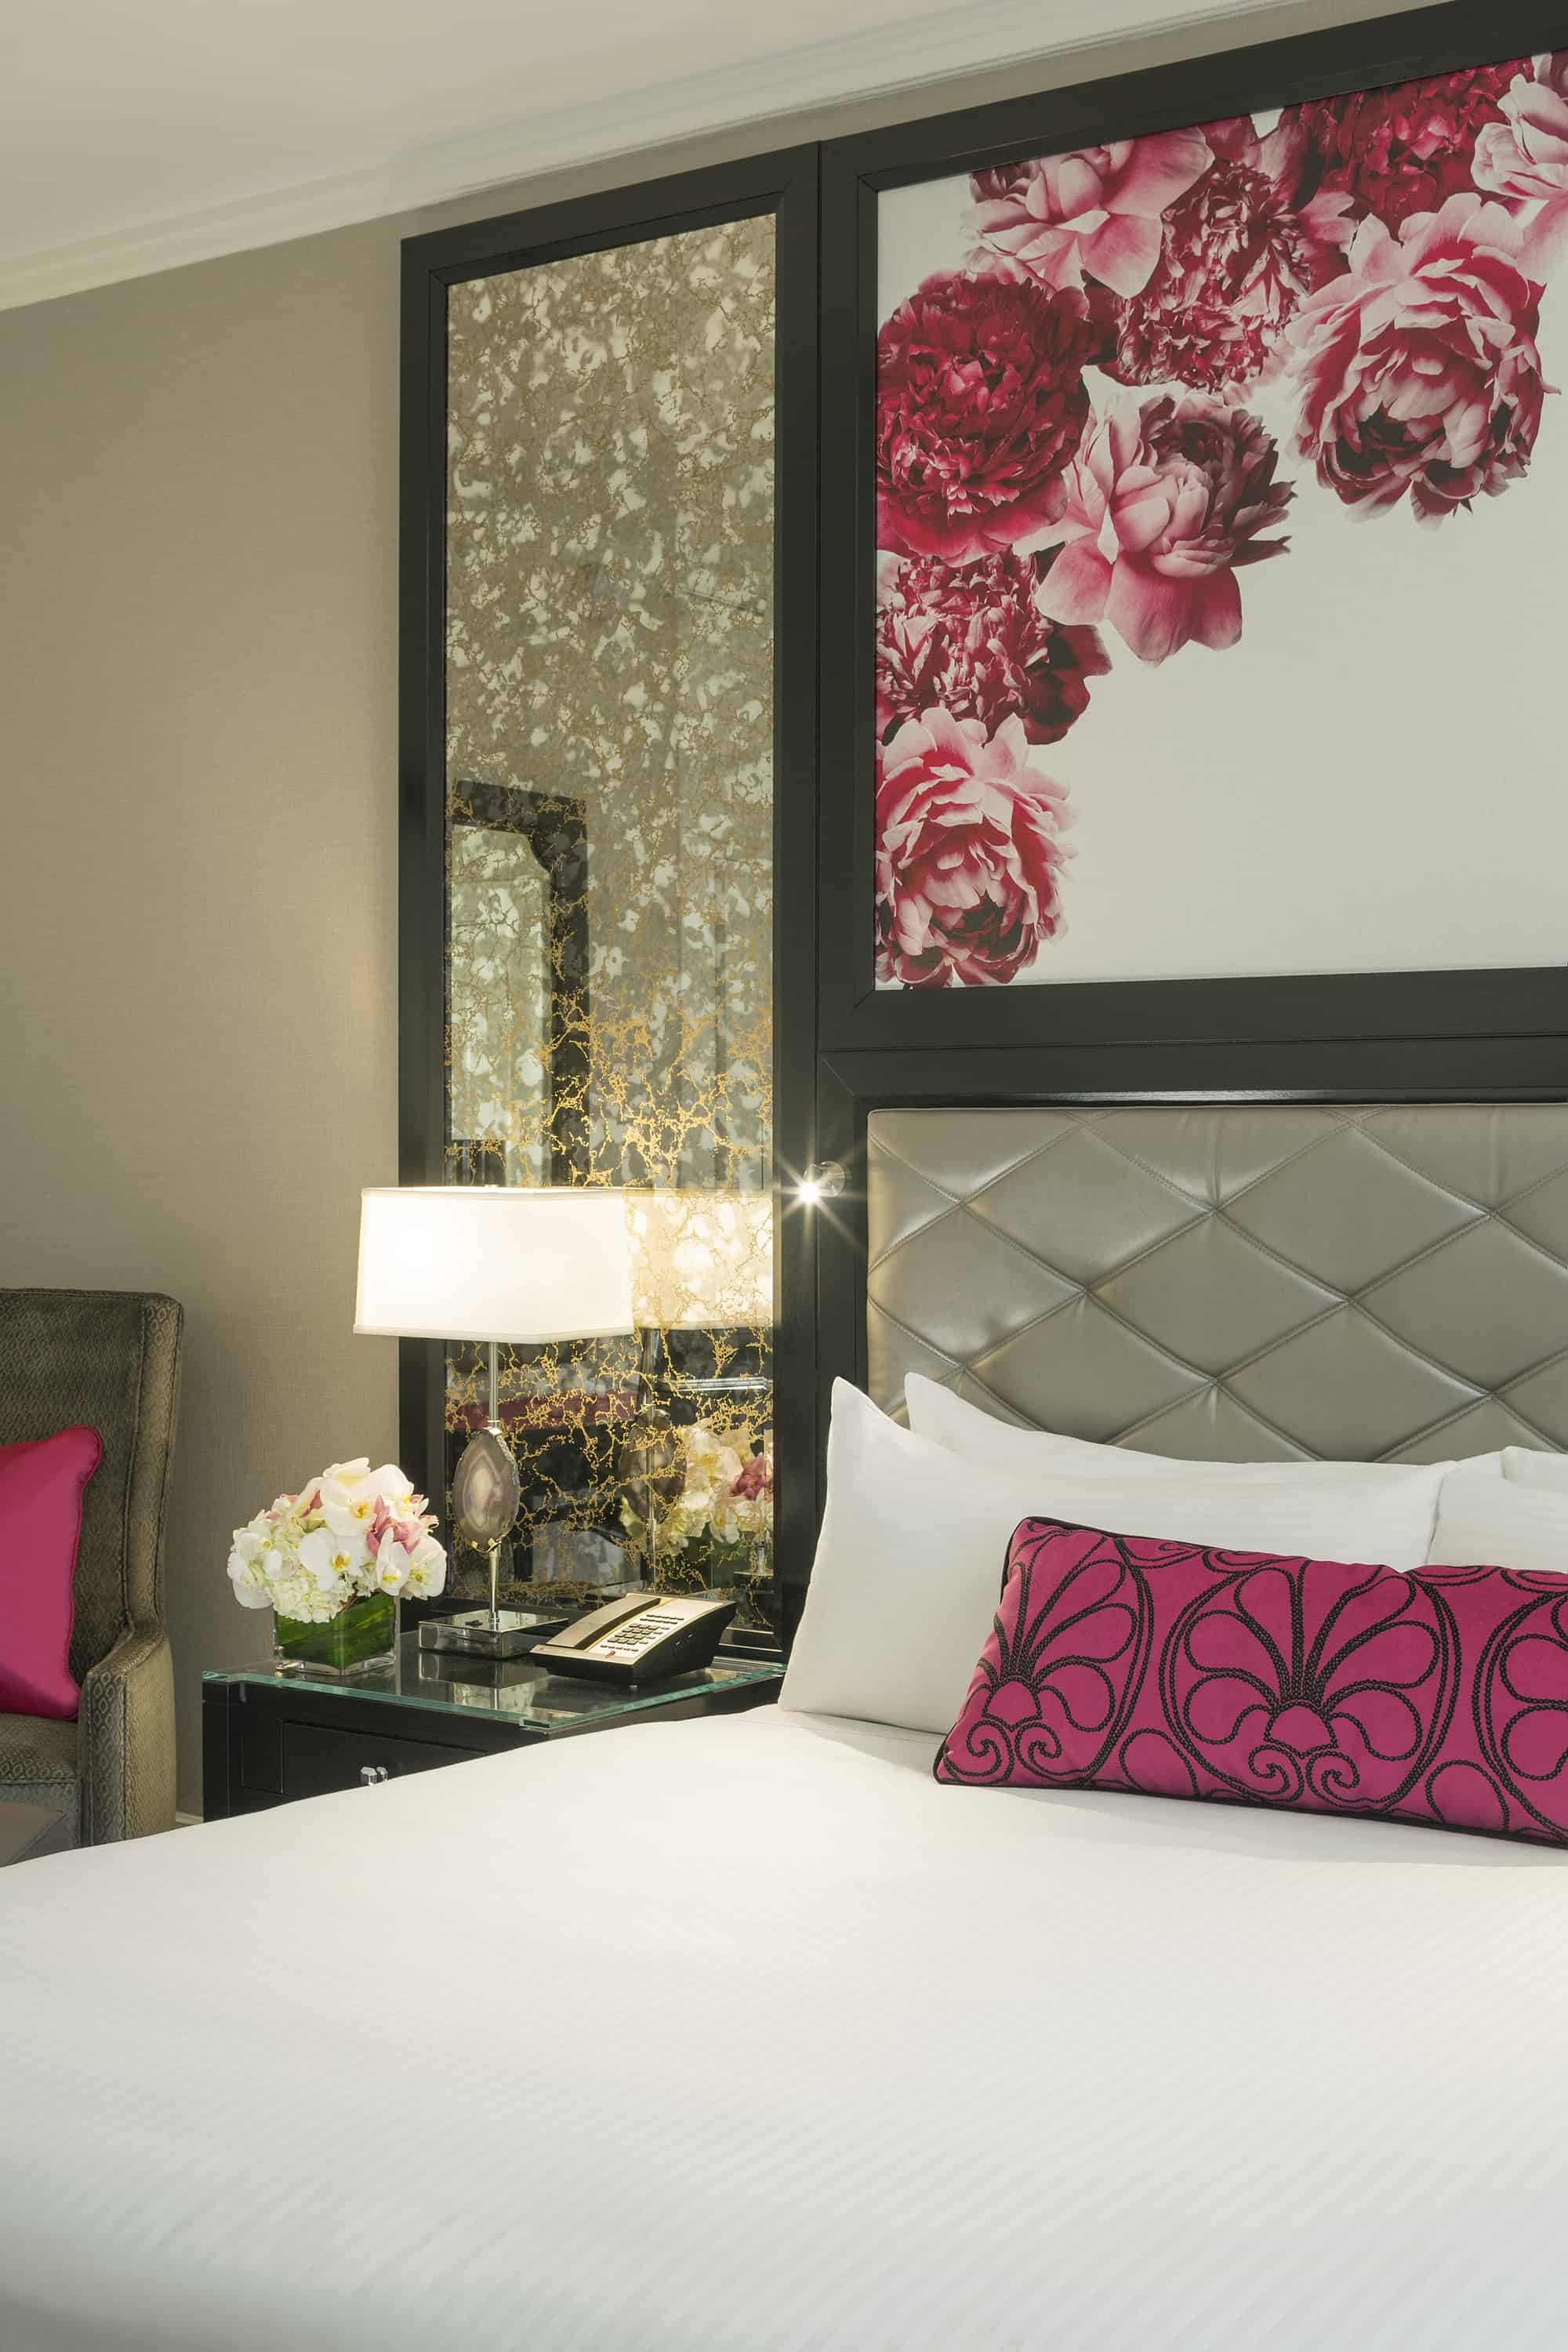 King room bed detail with peony painting and mercury glass side panels.